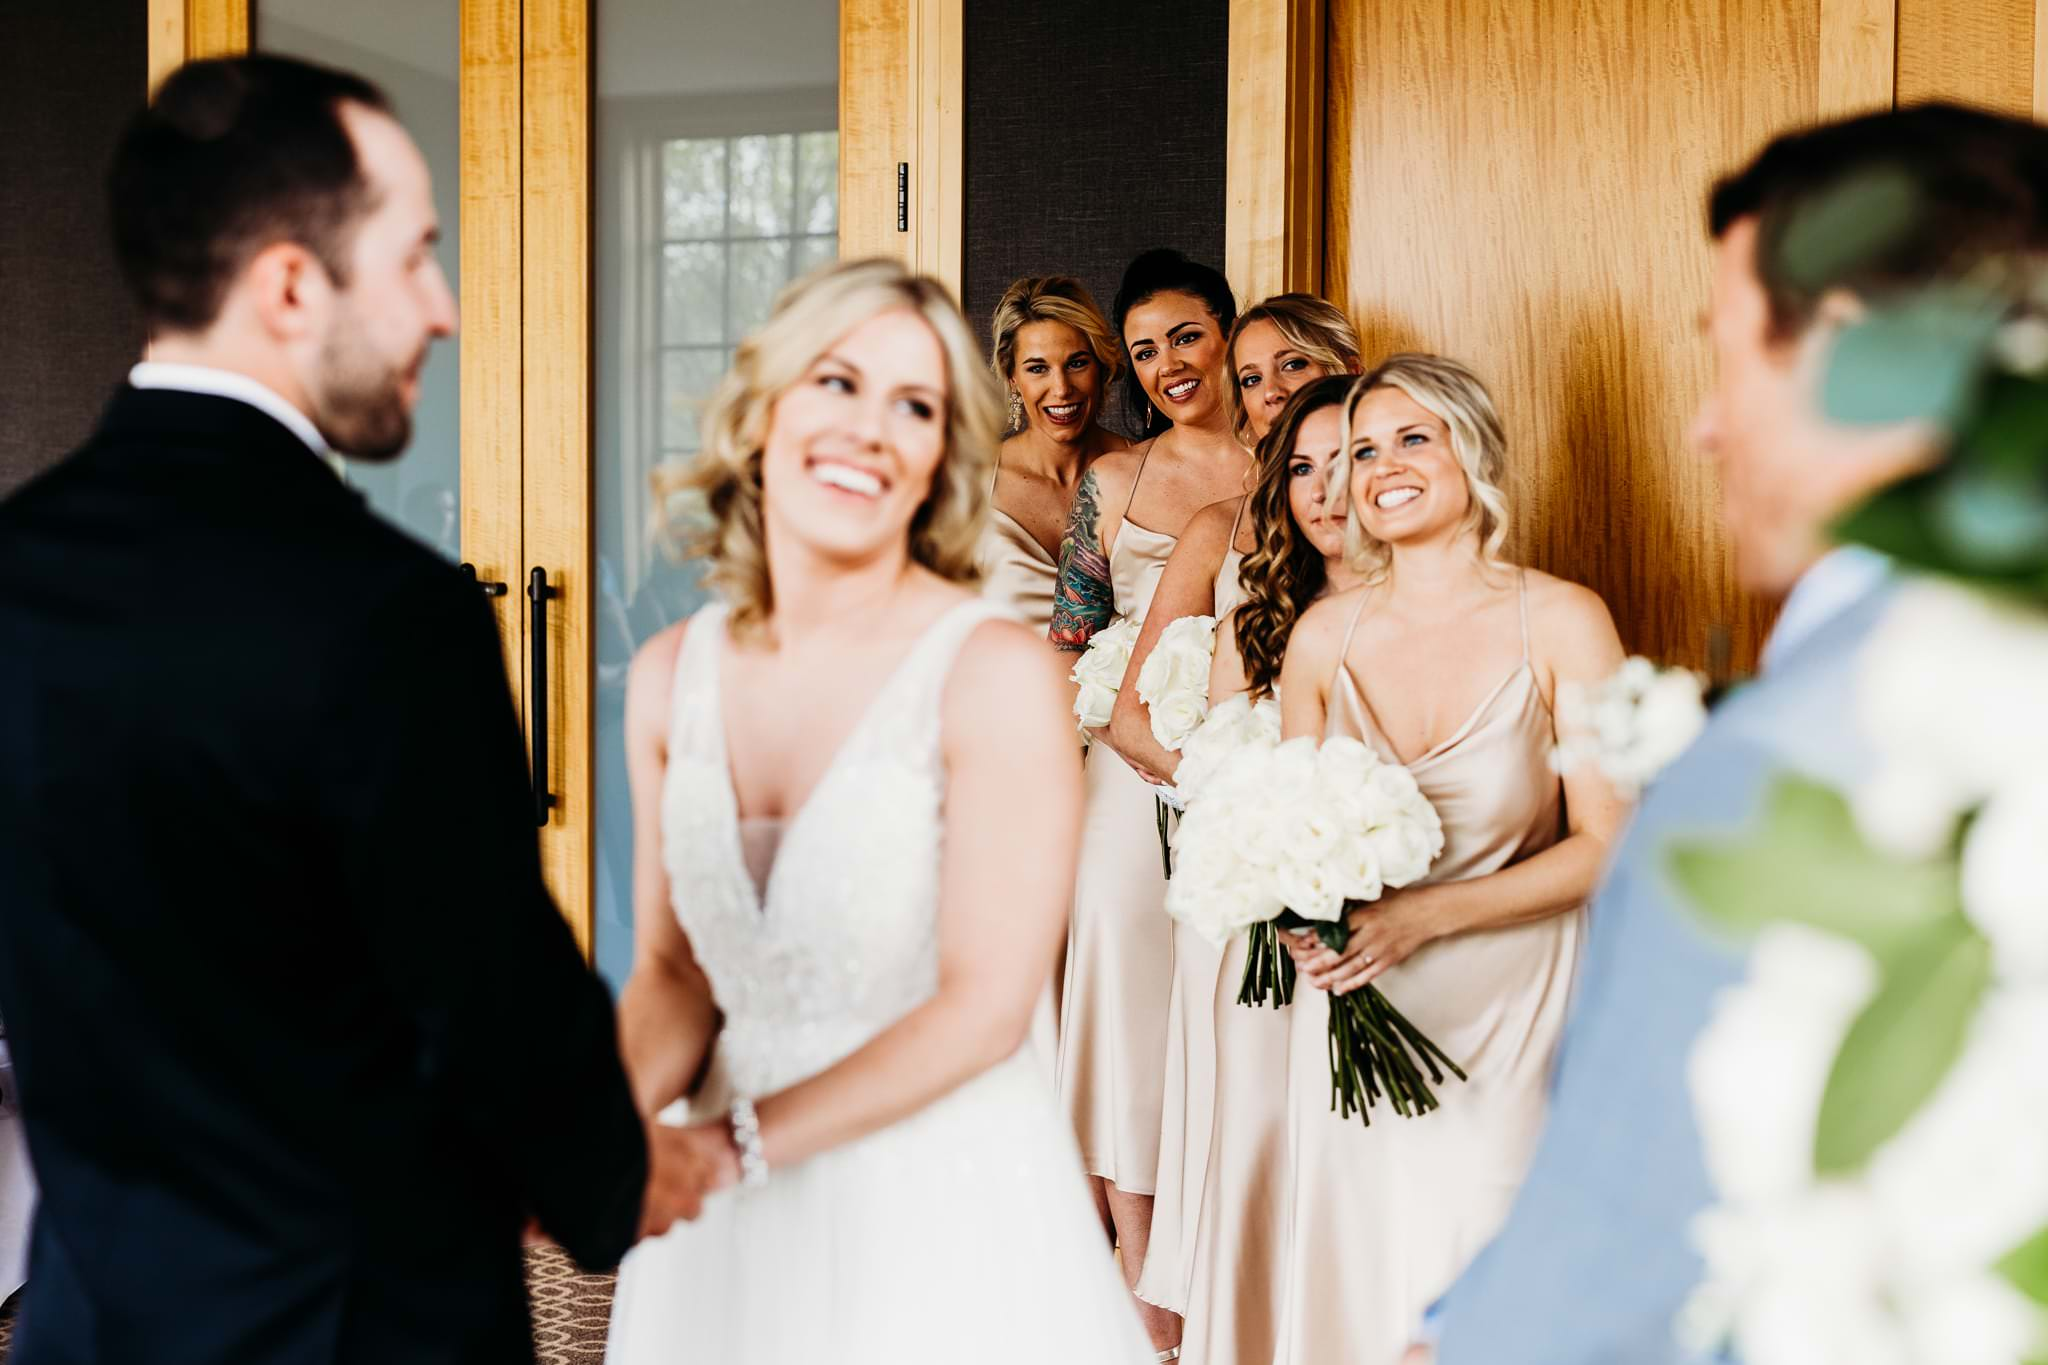 bridesmaid smile and watch as bride and groom hold hands during ceremony at their Hazeltine national golf course wedding